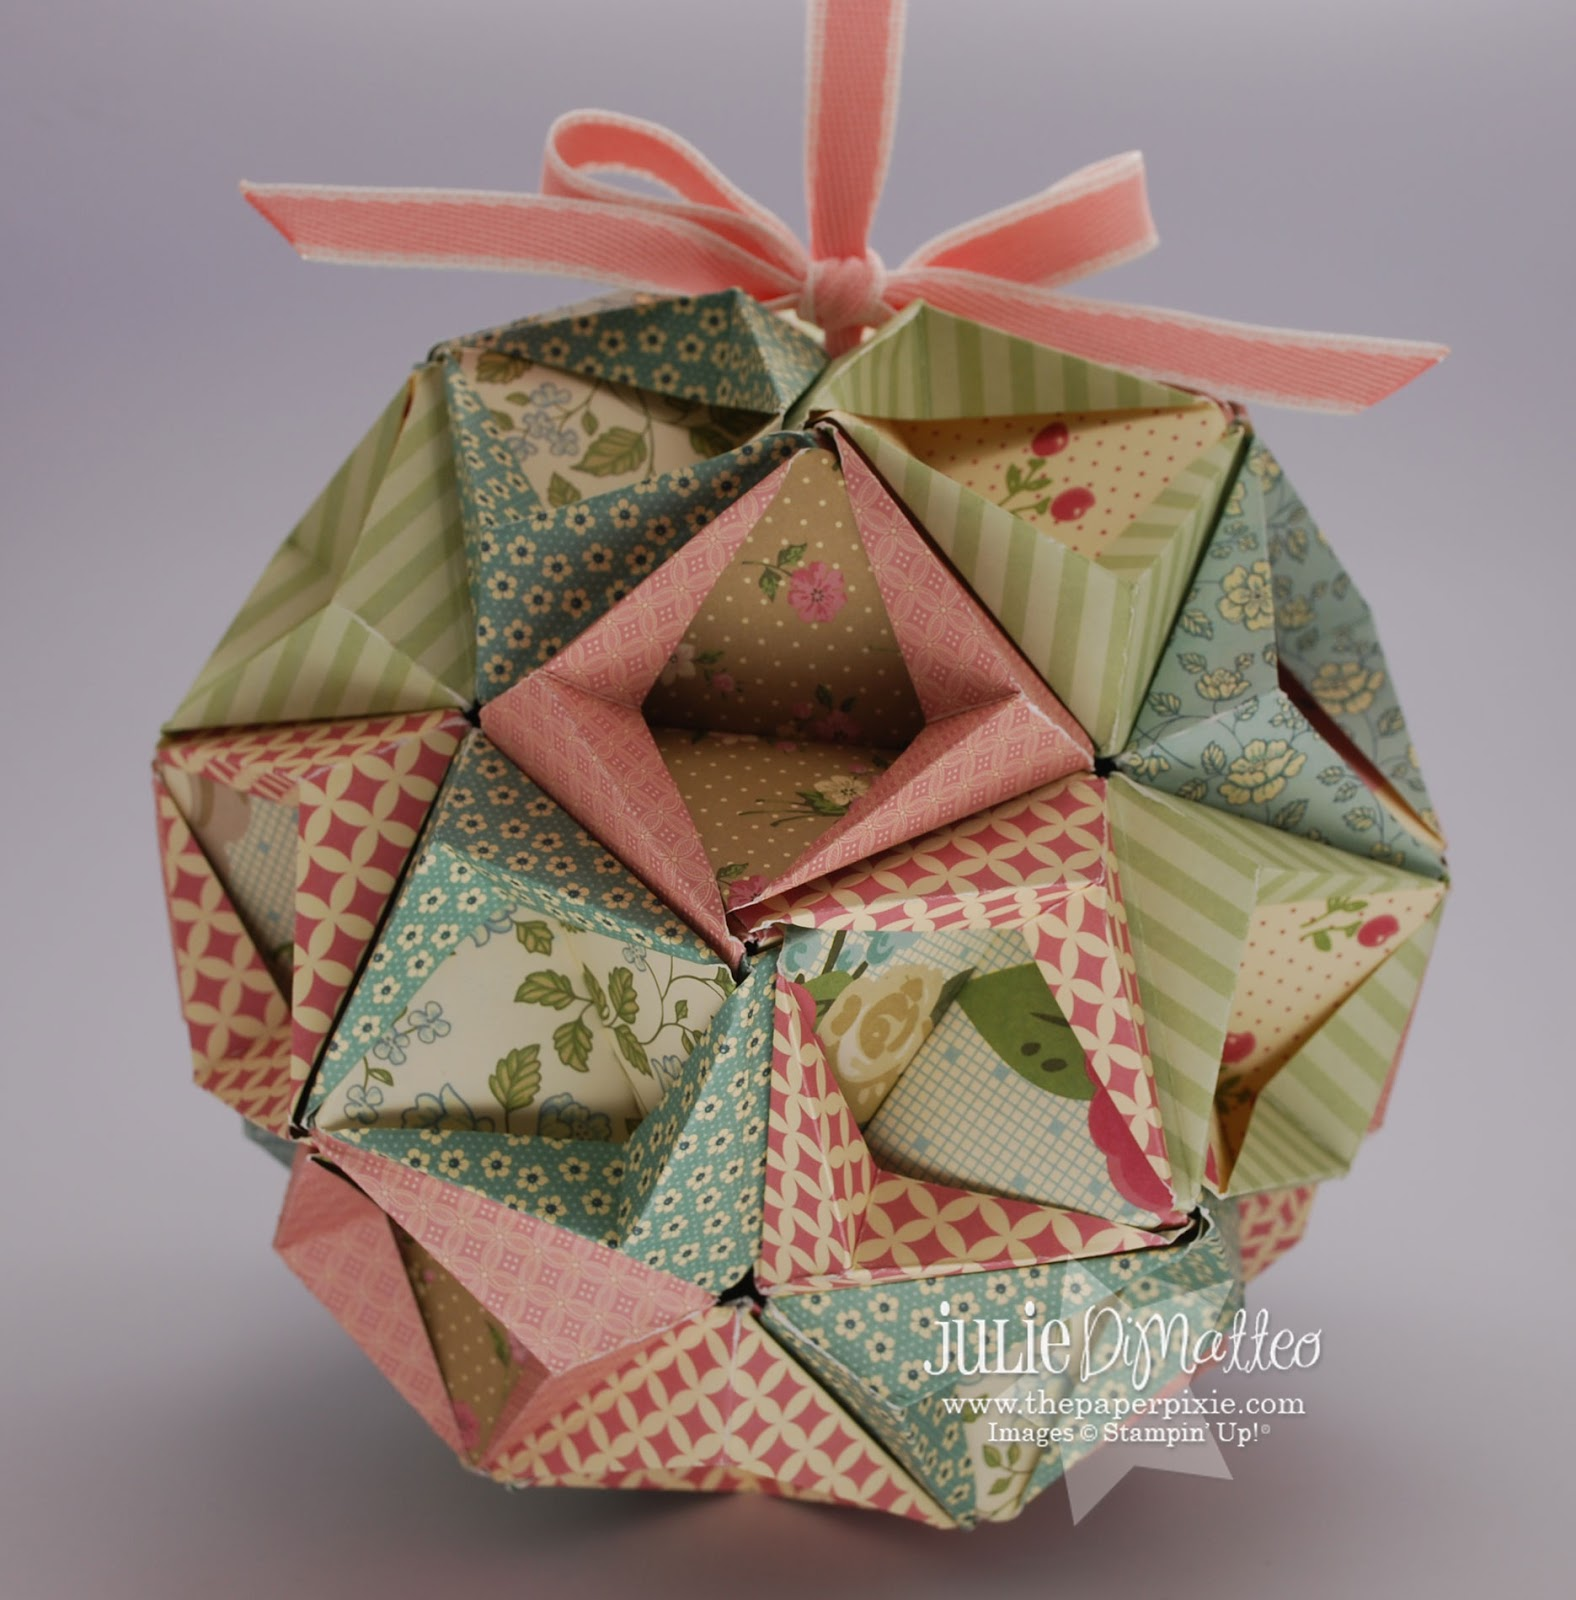 Picture Of Diy Origami Ornaments: The Paper Pixie: DSP Kusudama Ball